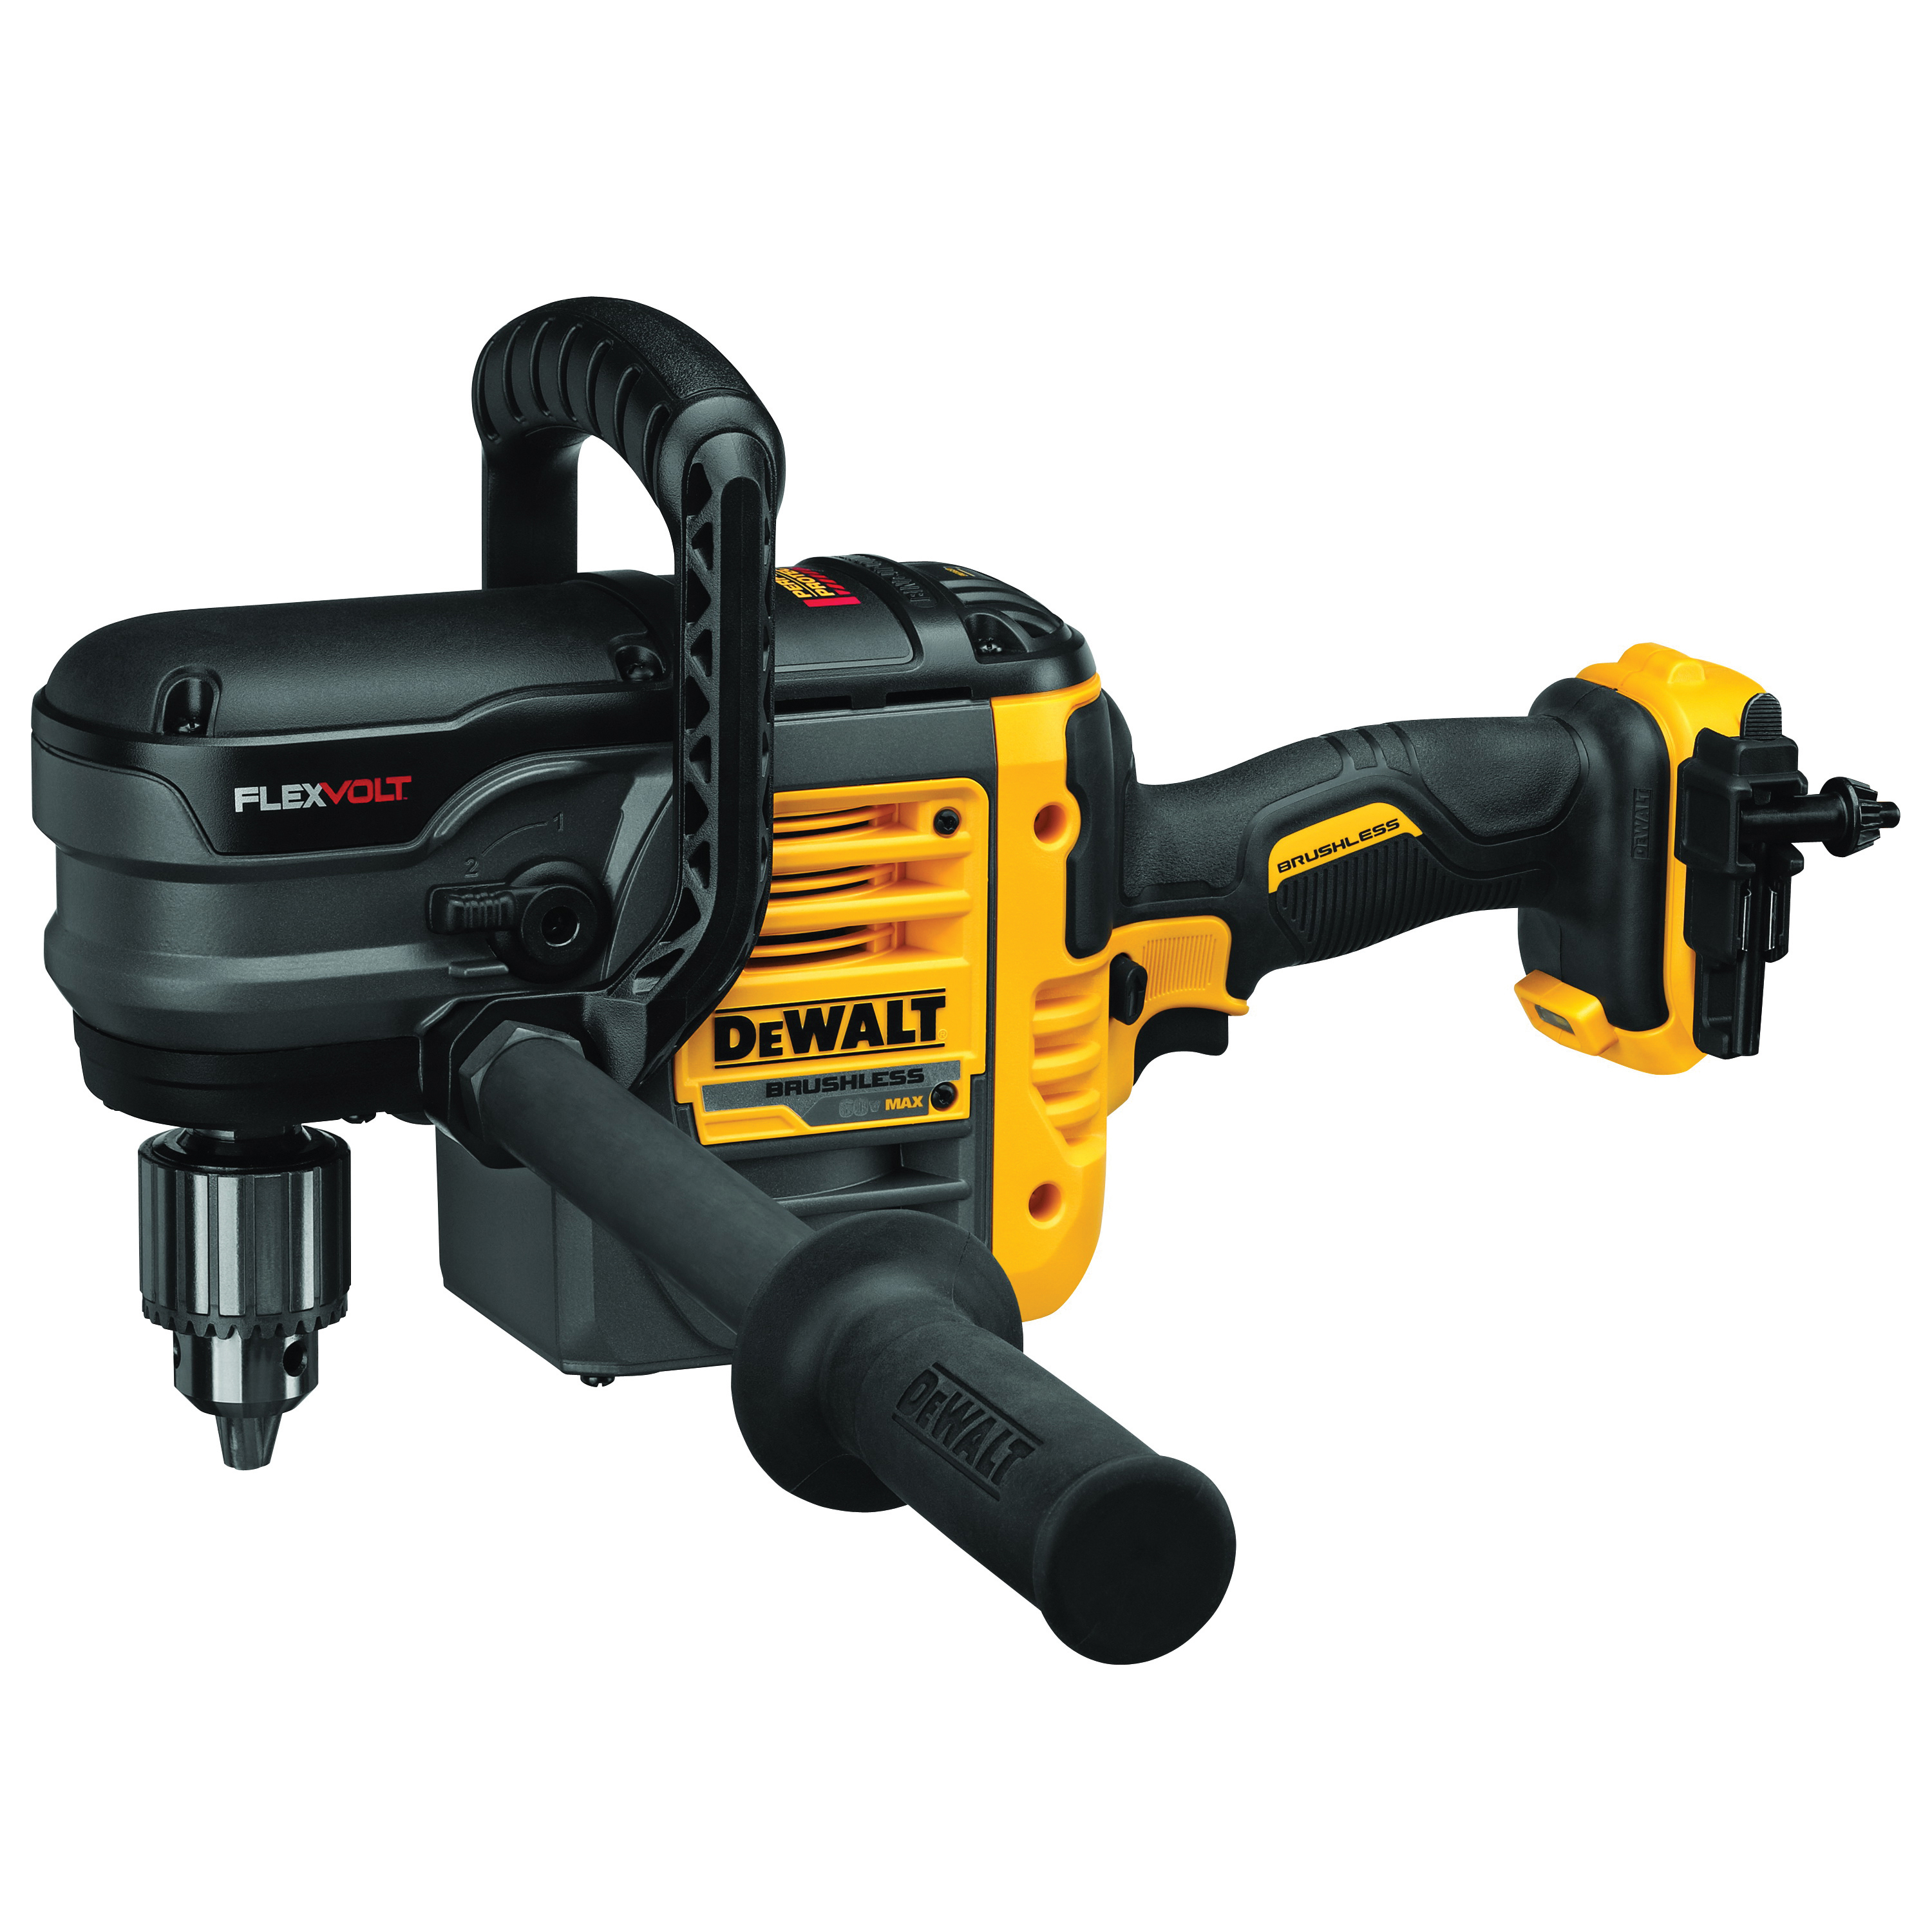 Picture of DeWALT DCD460B Stud and Joist Drill, Bare Tool, 60 V Battery, 1/2 in Chuck, Keyed Chuck, Battery Included: No